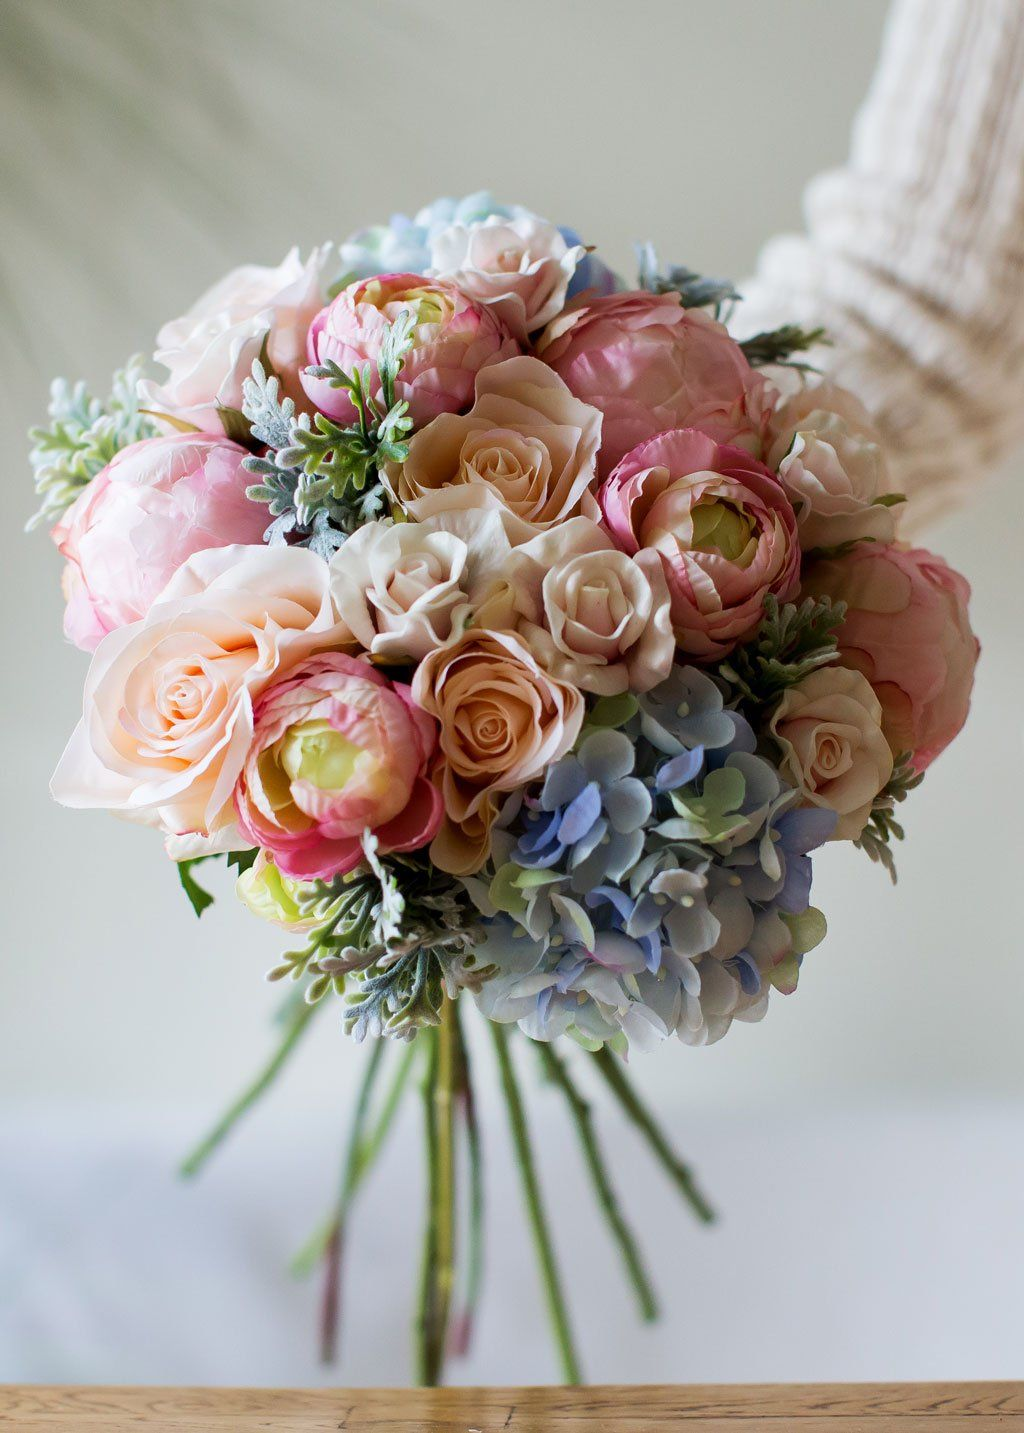 How to make a bridal bouquet bridal bouquets pinterest how to make a bridal bouquet create your own wedding bouquet with high quality fake flowers izmirmasajfo